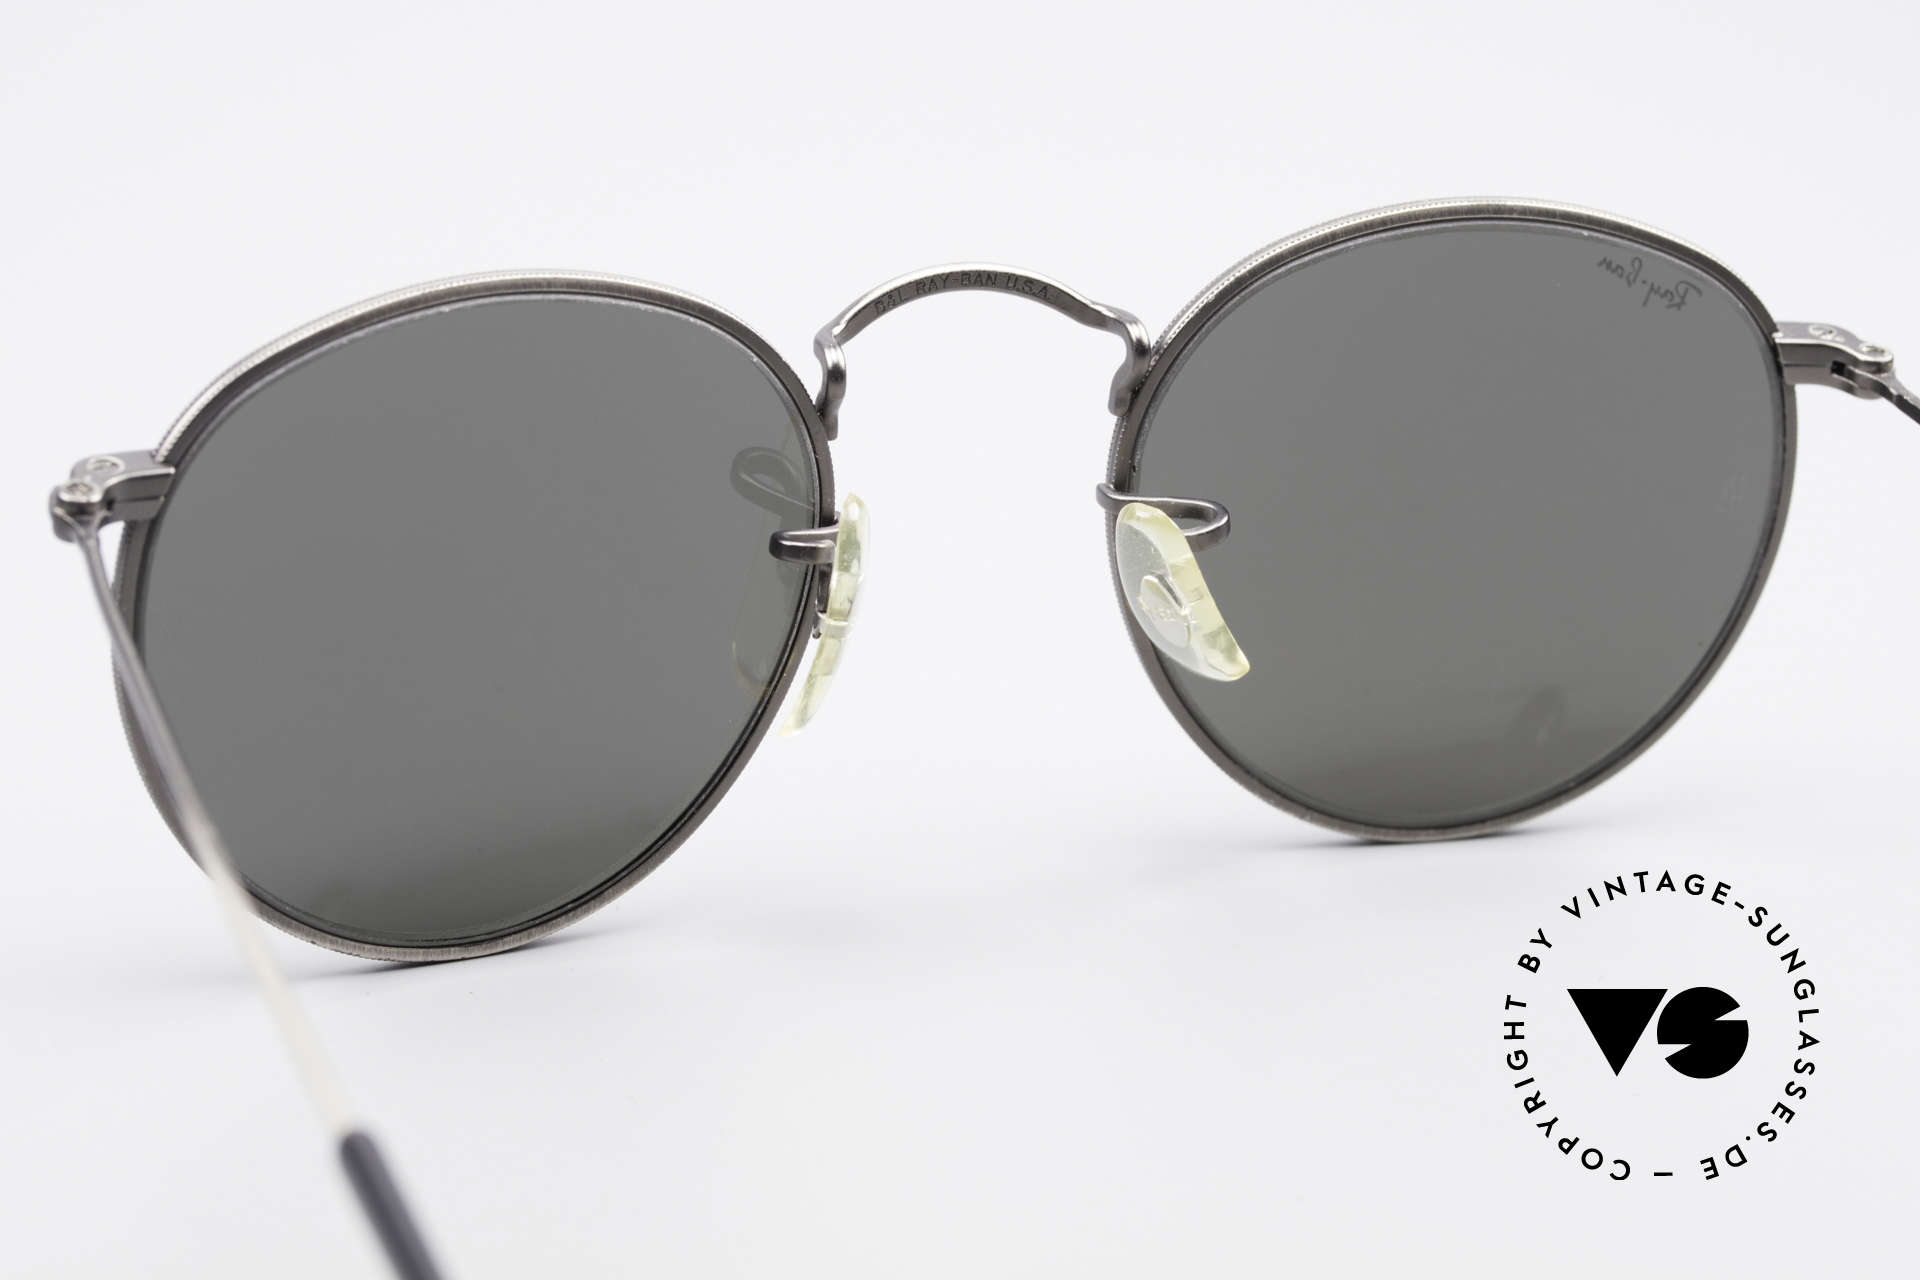 Ray Ban Round Metal 47 Mirrored B&L USA Sunglasses, original name: B&L Small Round Metal, W1575, 47mm, Made for Men and Women